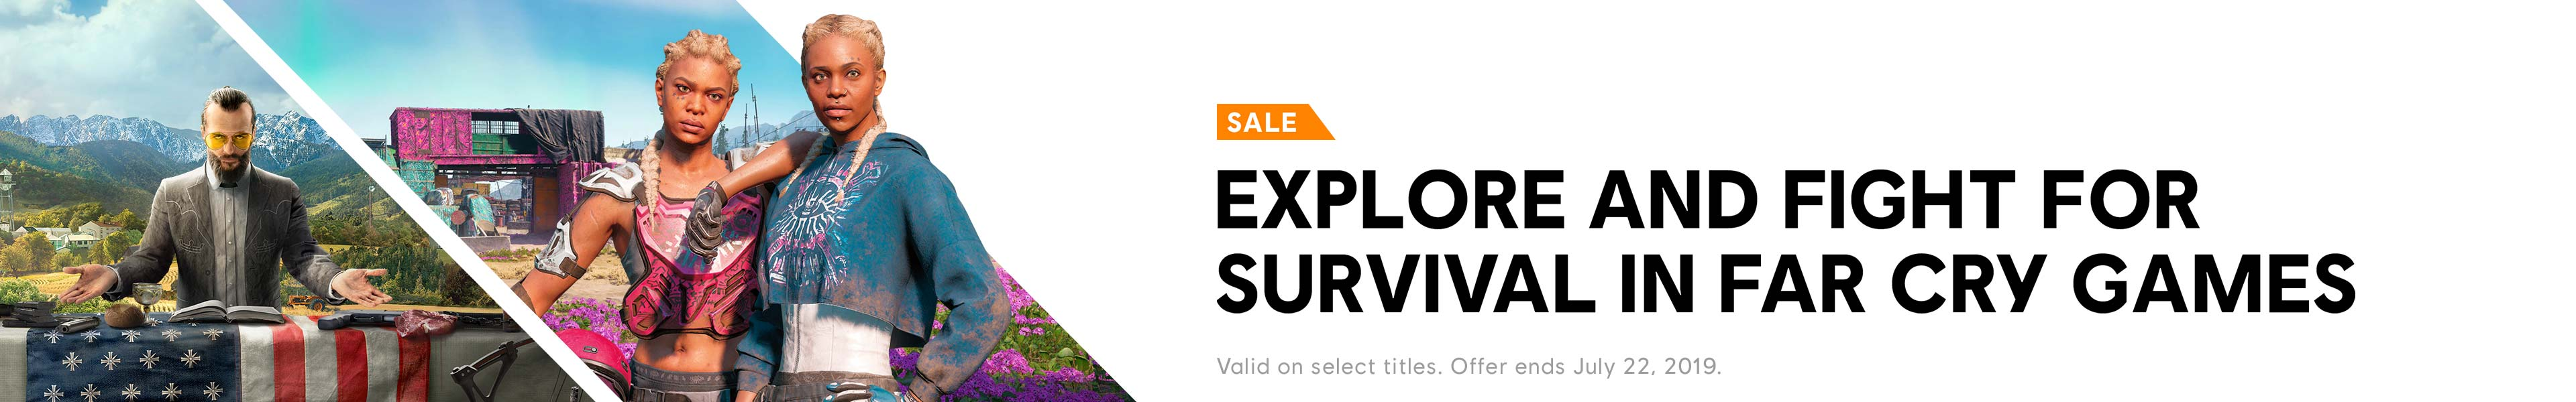 Far Cry Sale Category banner